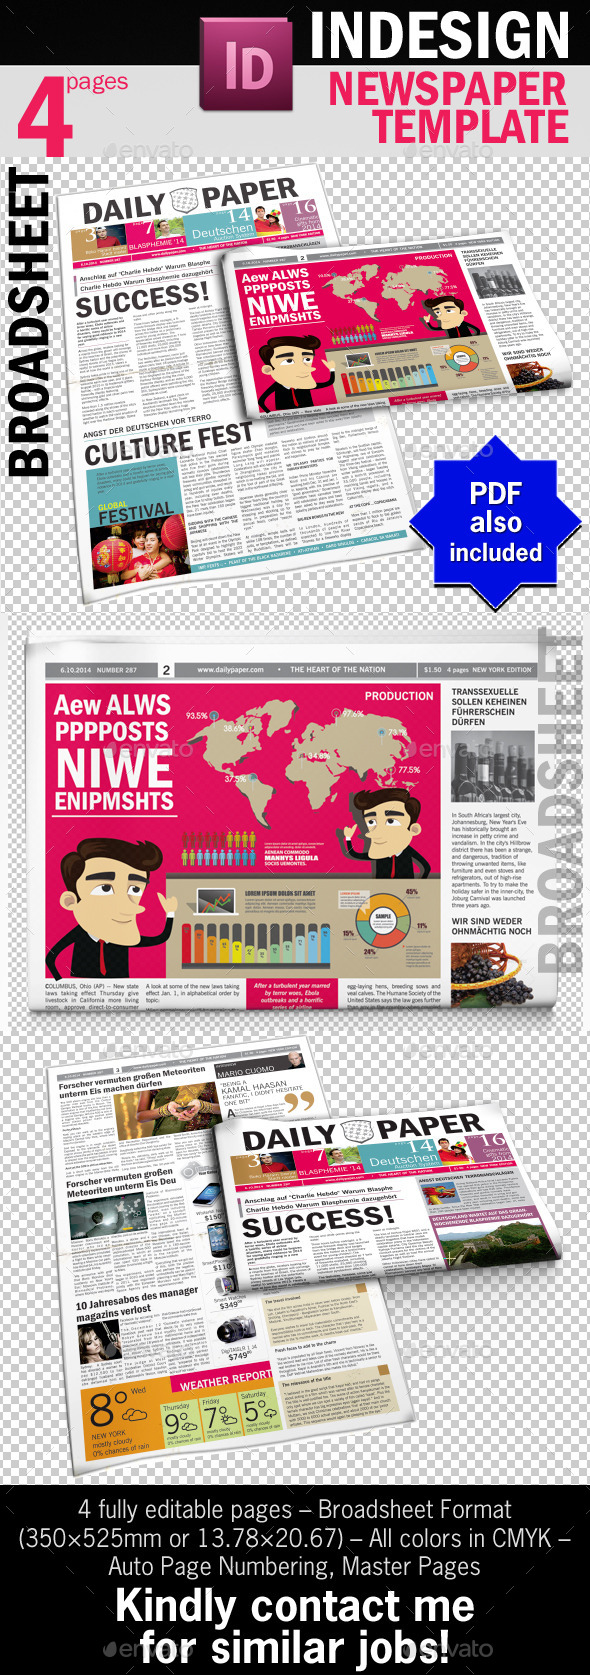 DailyPaper Newspaper Template